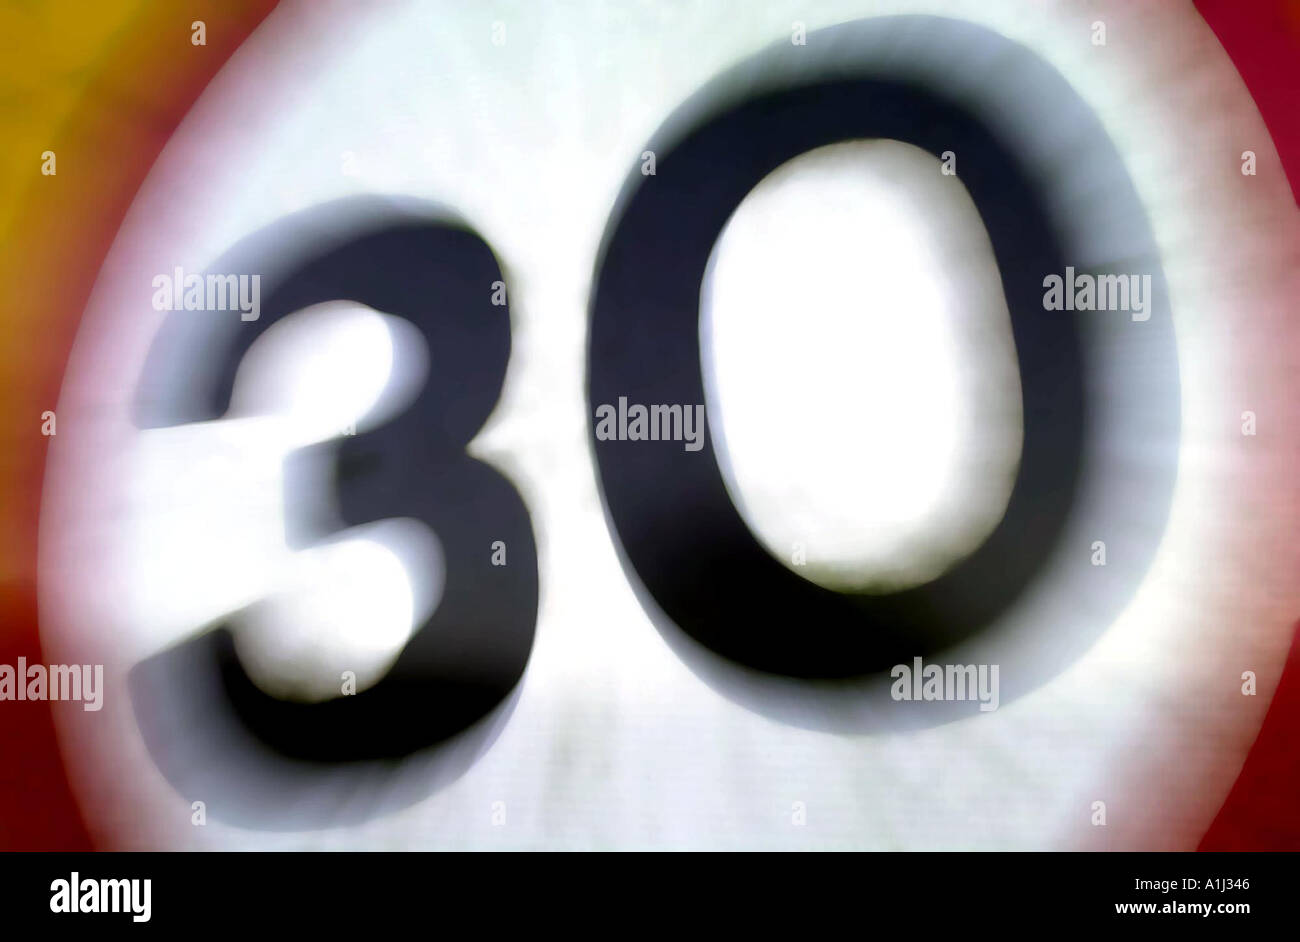 30 MPH SPEED LIMIT SIGN UK - Stock Image